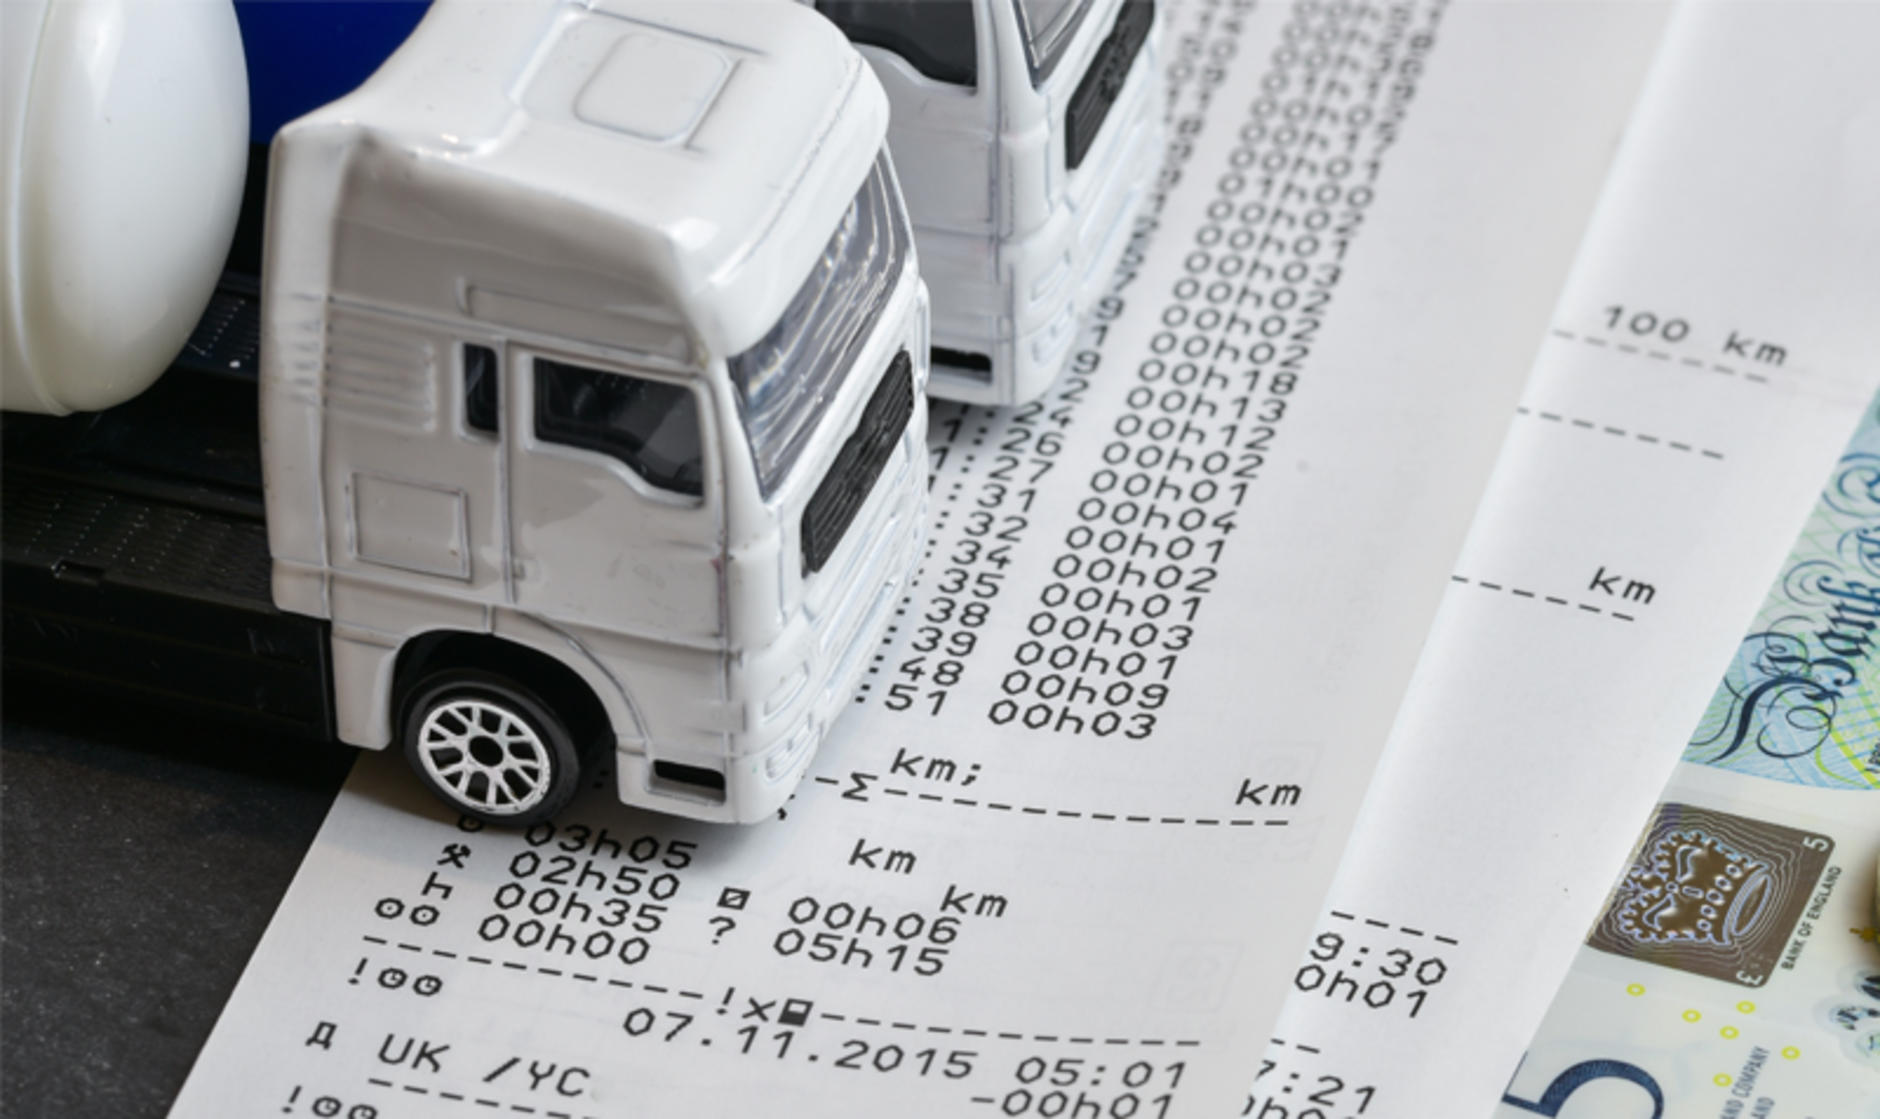 tachograph print ouT